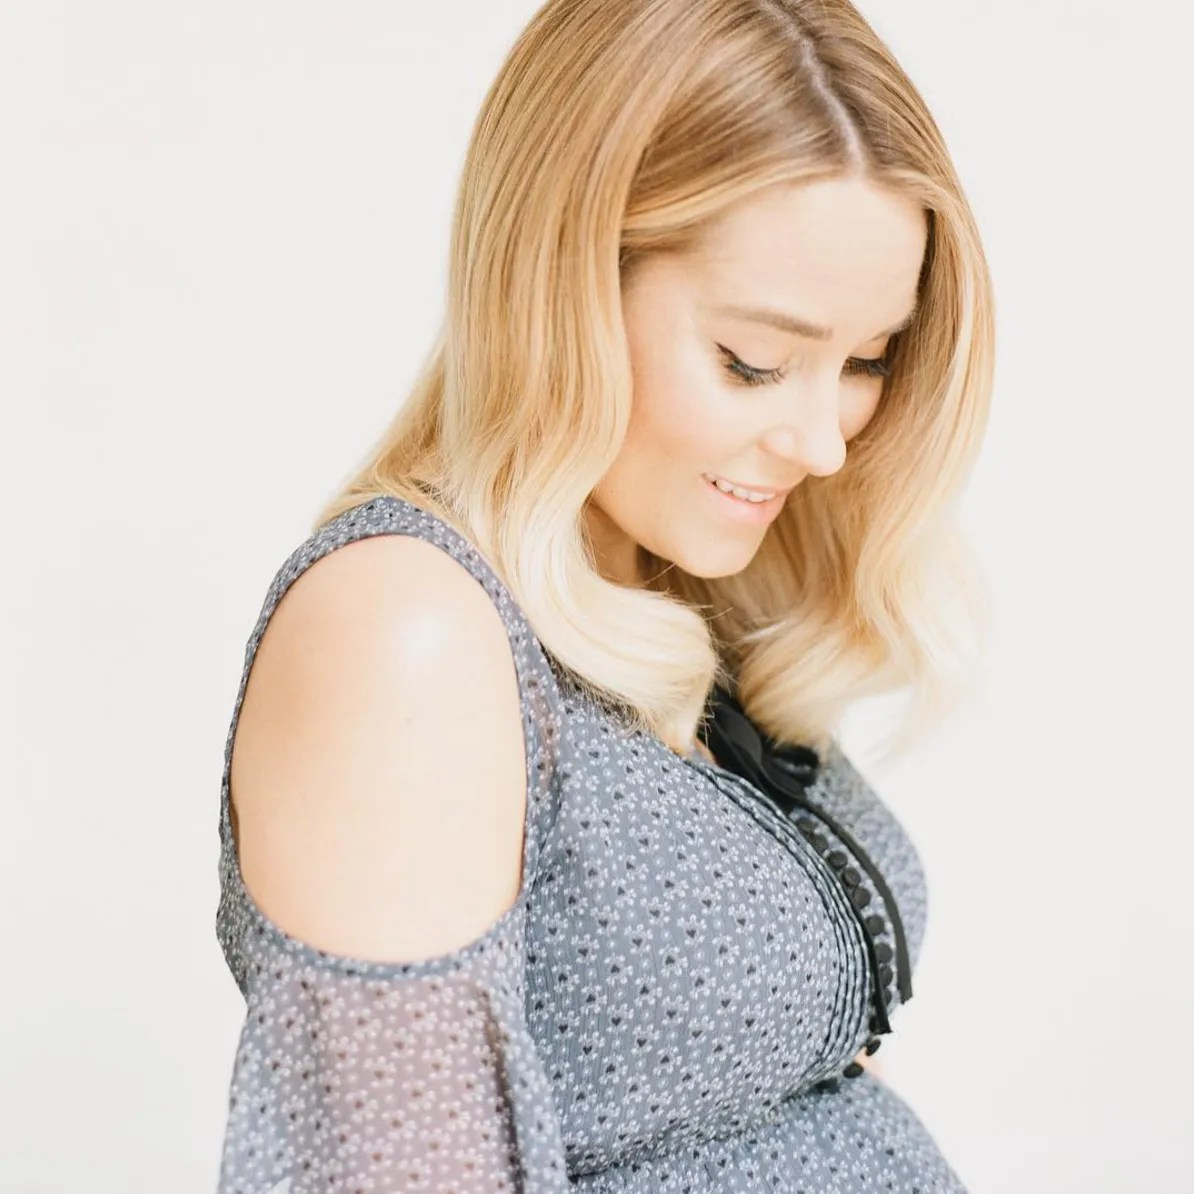 Lauren Conrad Lauren Conrad Says Fitting Maternity Designs Into Her Clothing